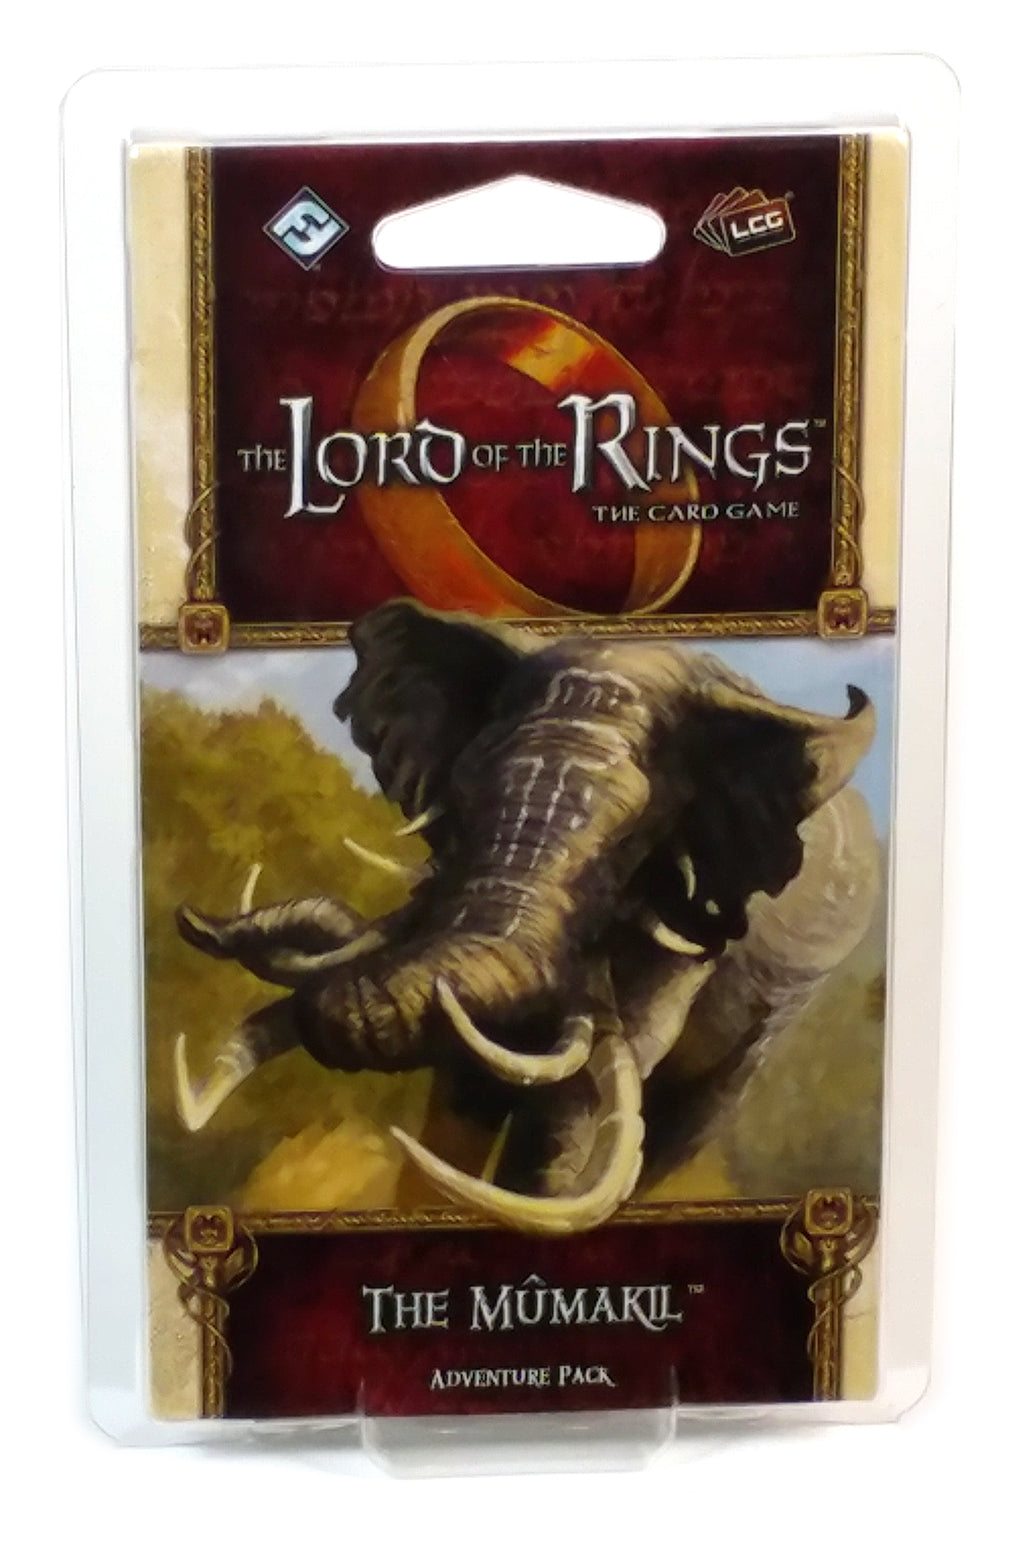 Lord of the Rings LCG, The Mumakil Adventure pack